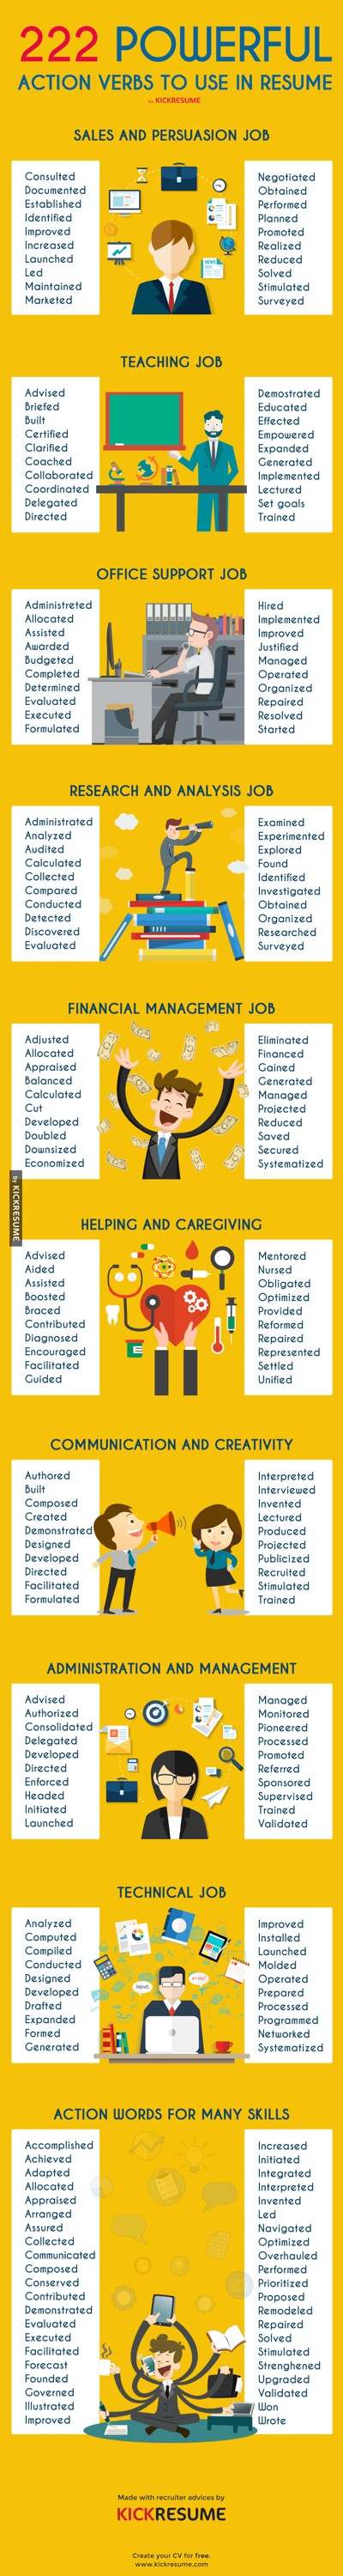 Pin by Thatyana Morales on Facts and Hacks Job resume